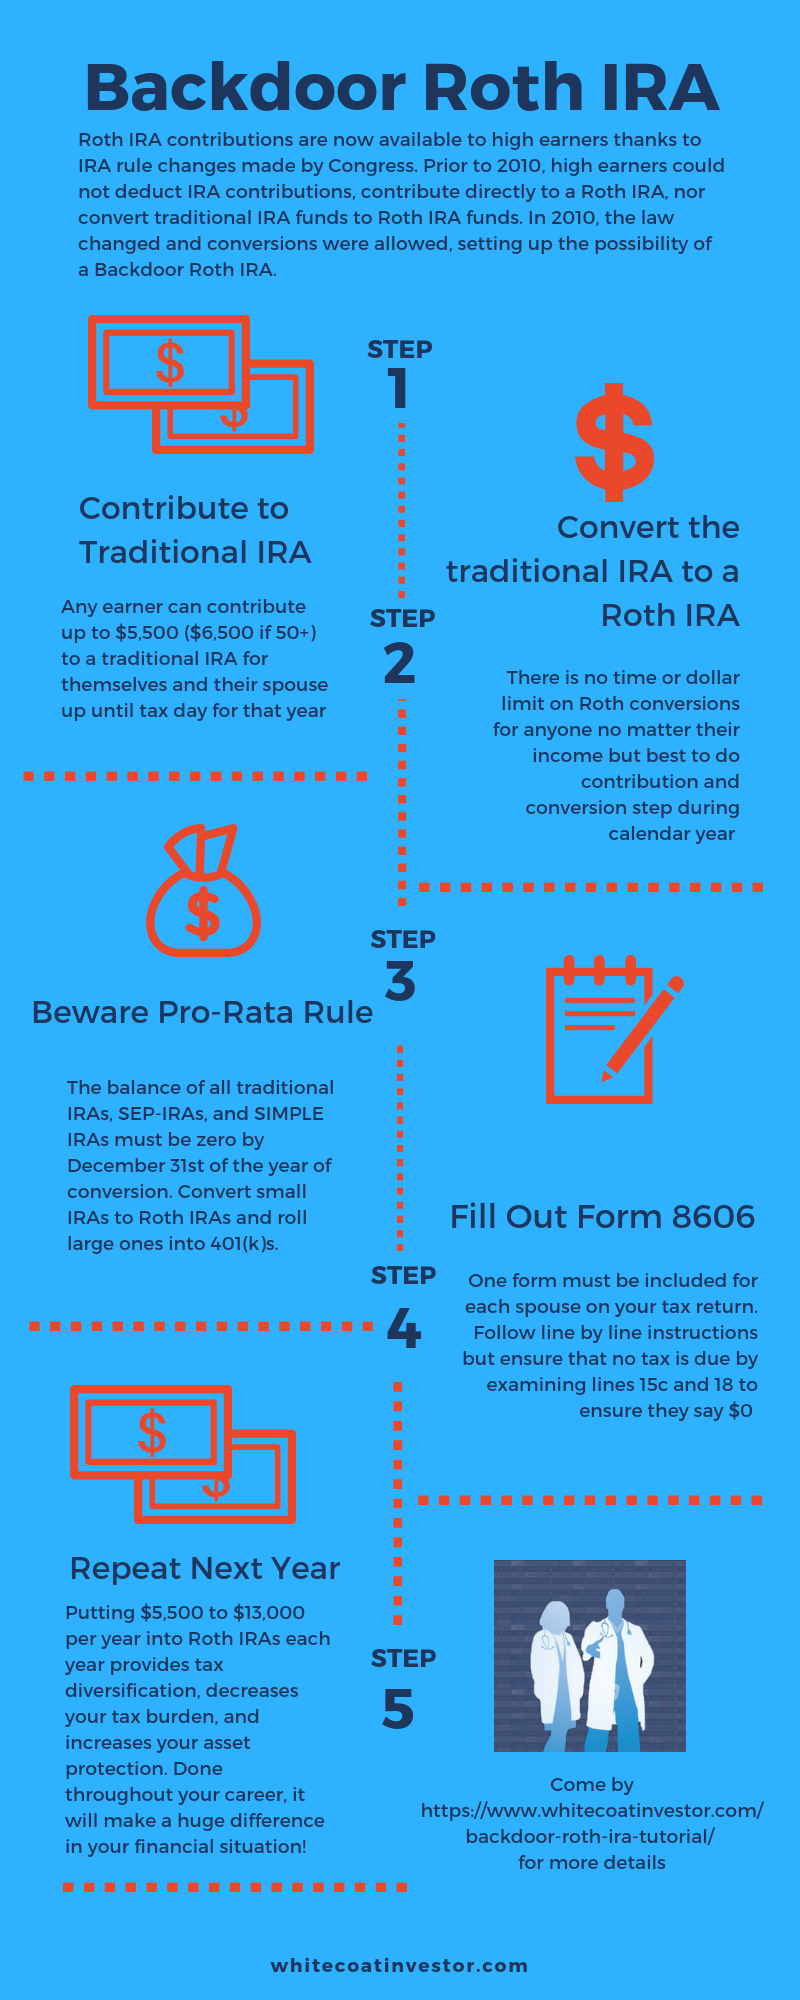 Backdoor Roth IRA steps